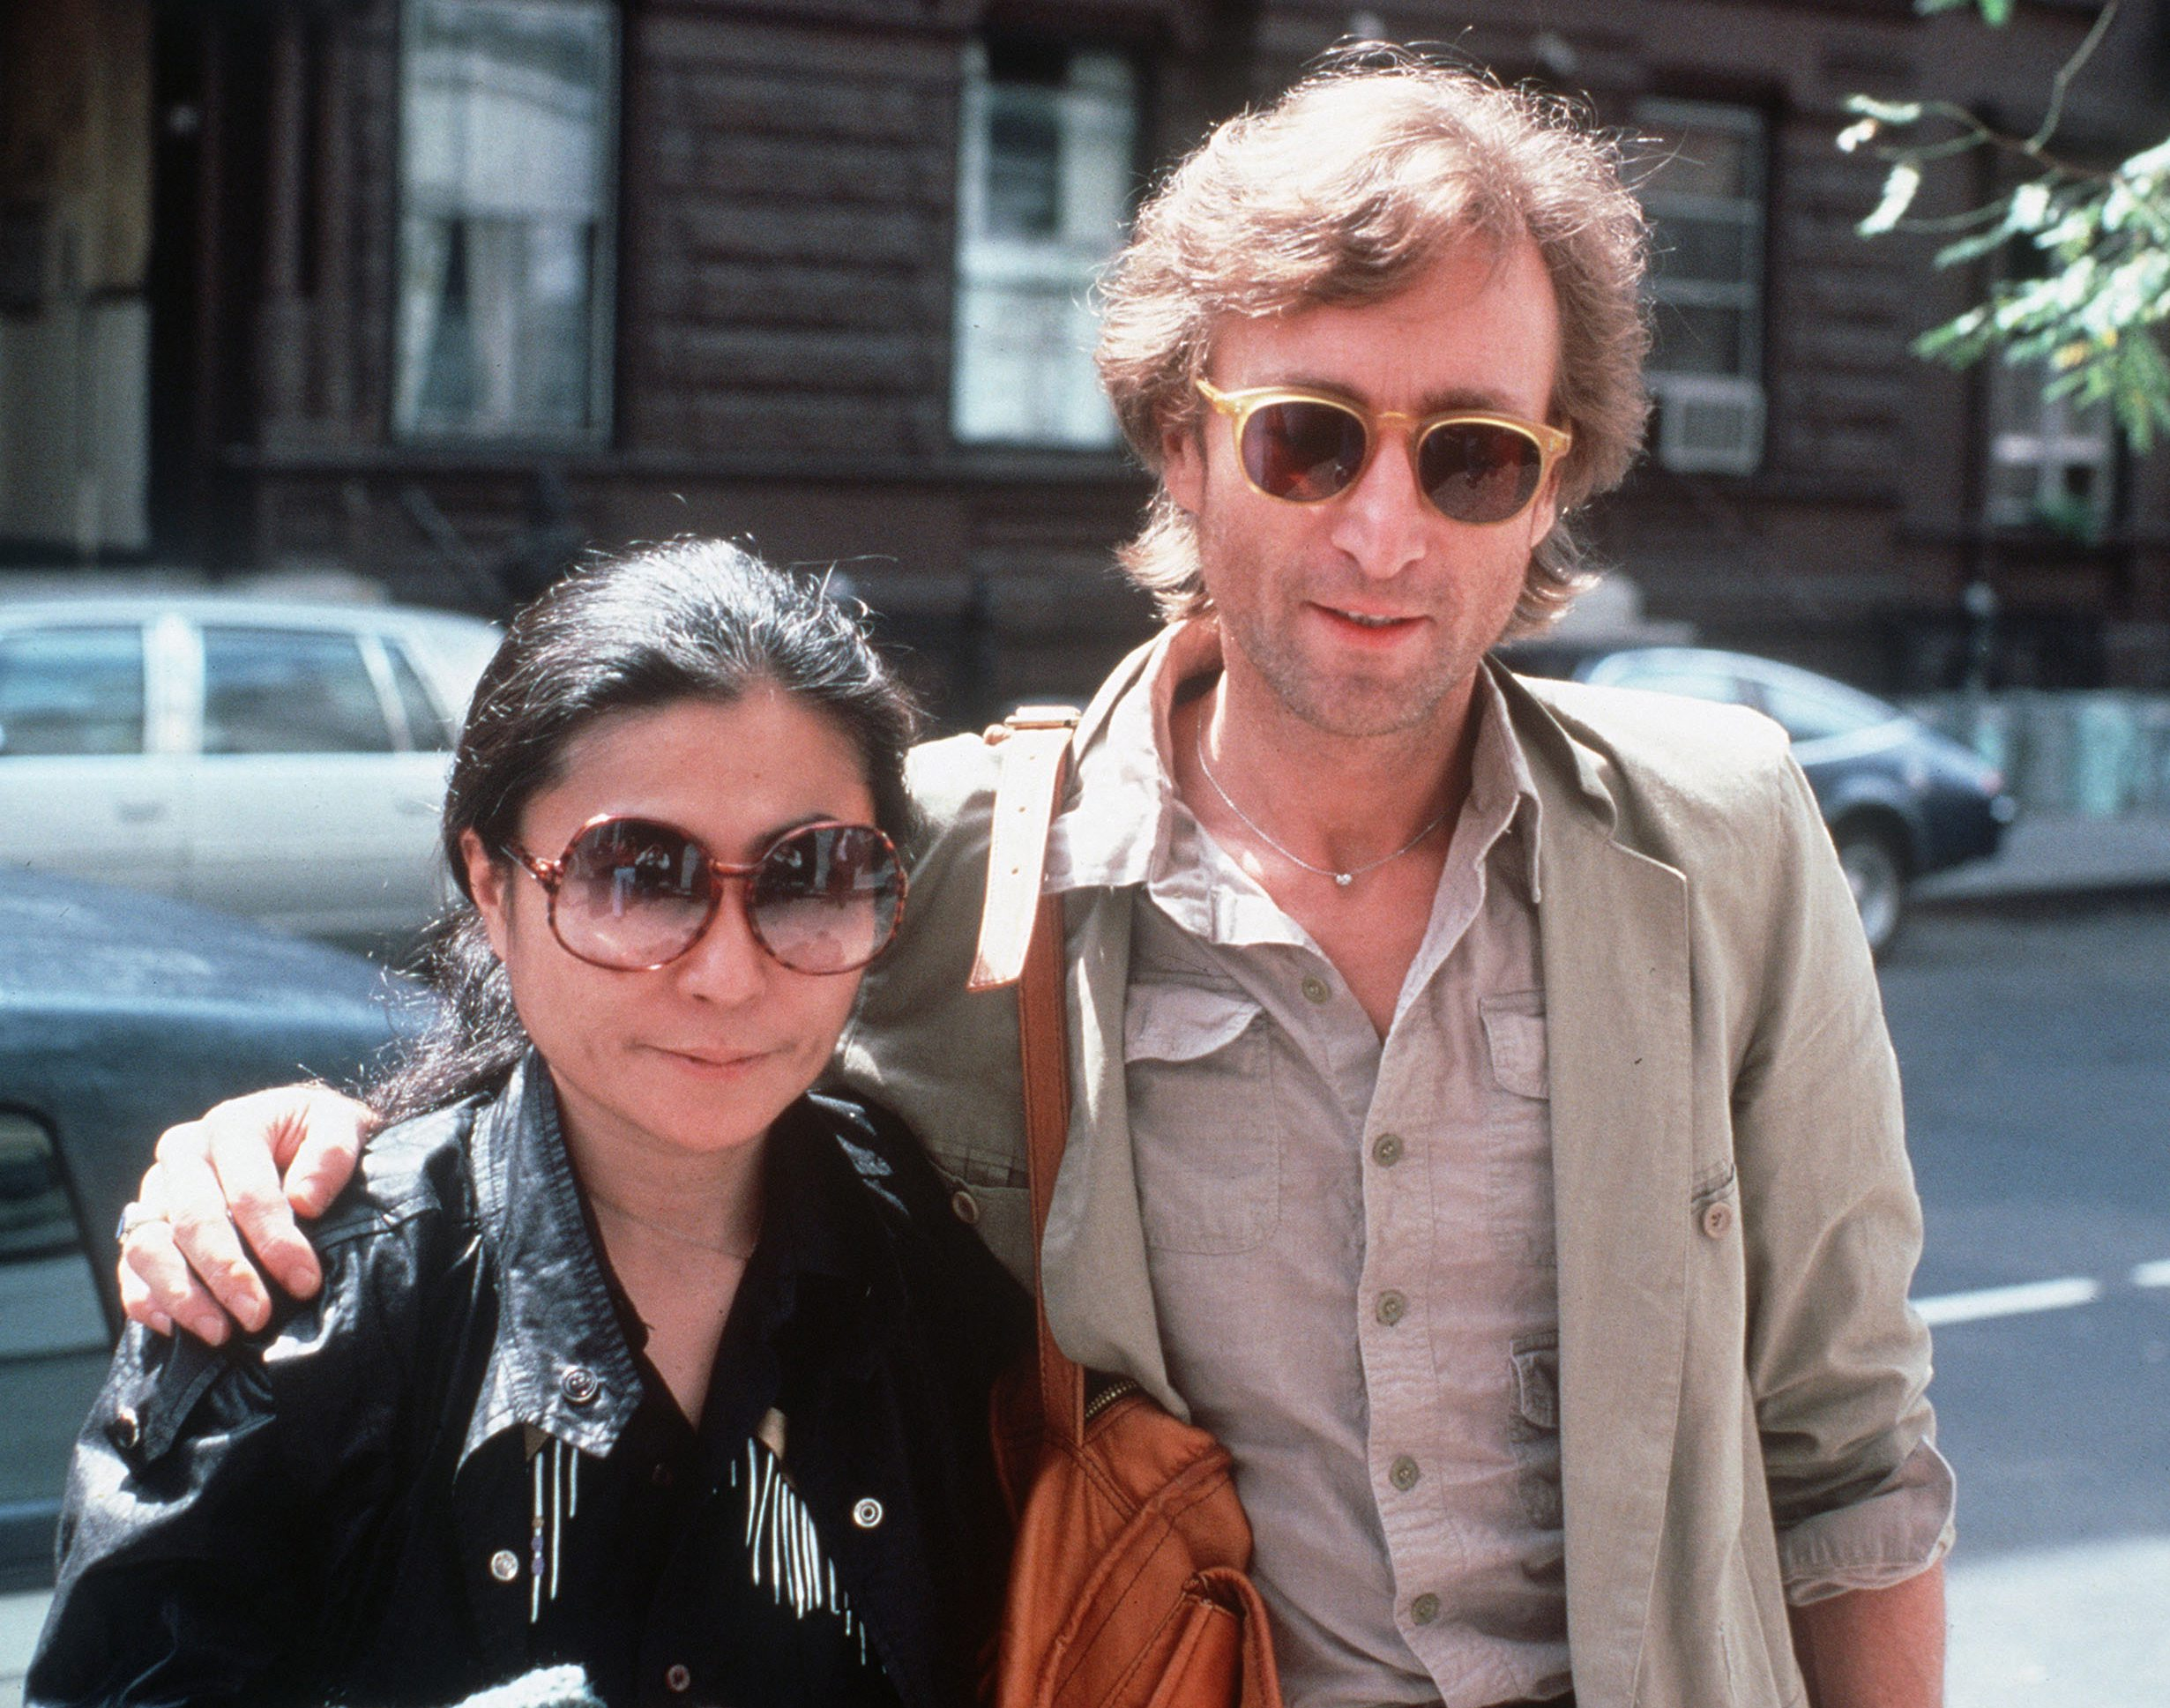 The canonization of John Lennon